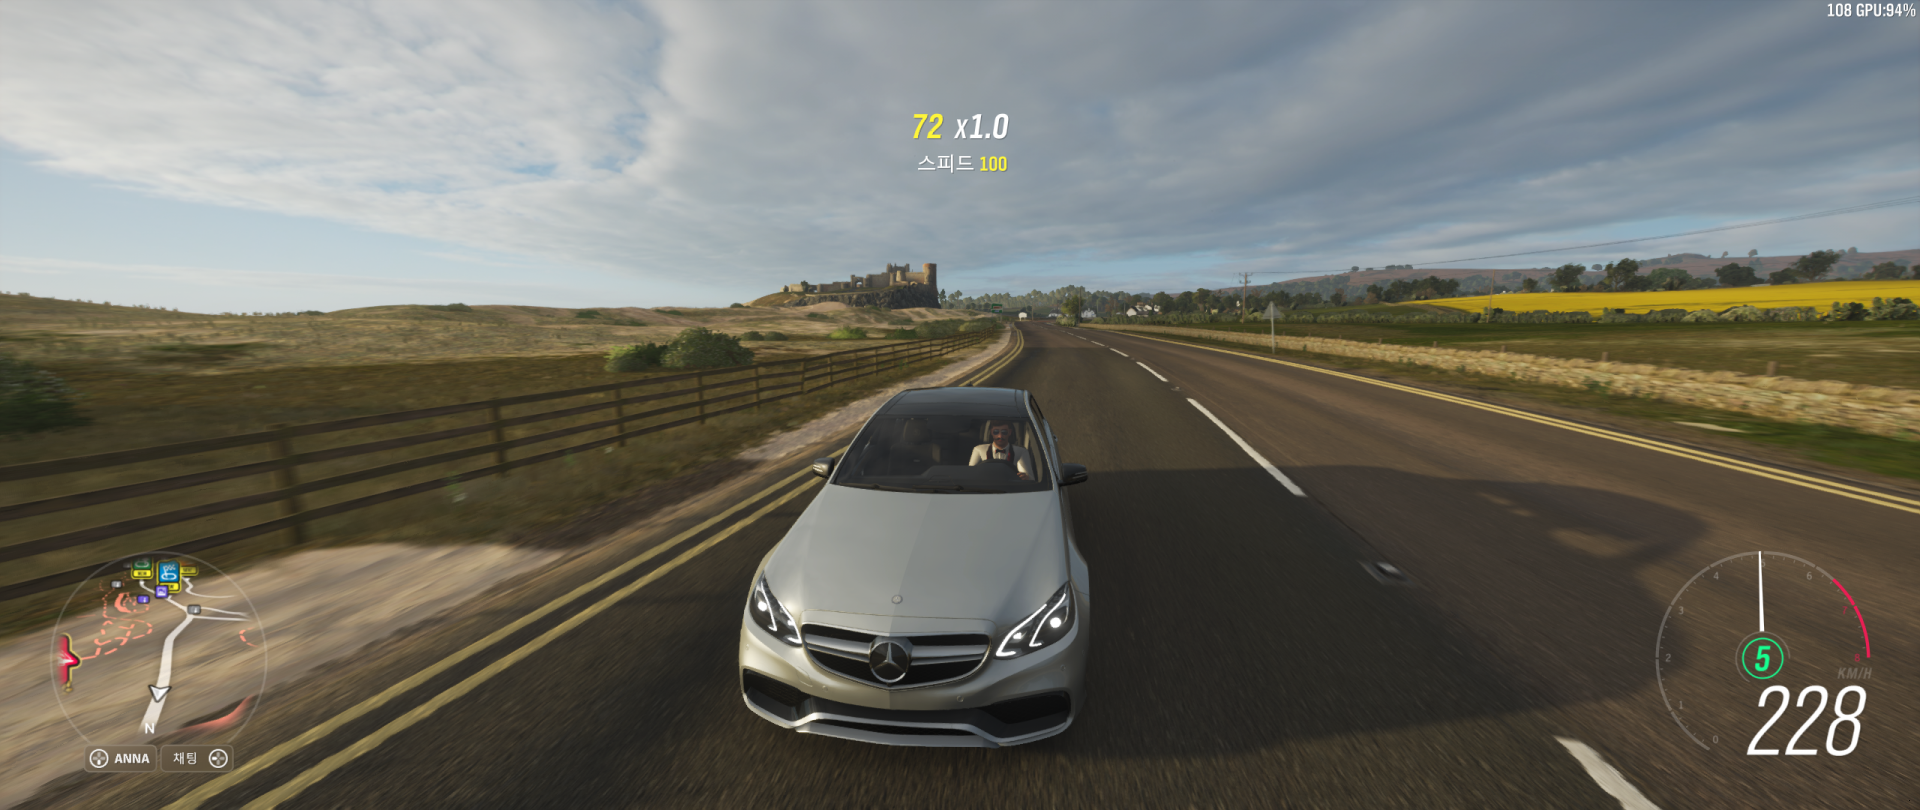 Forza Horizon 4 Screenshot 2018.10.21 - 00.47.52.97.png